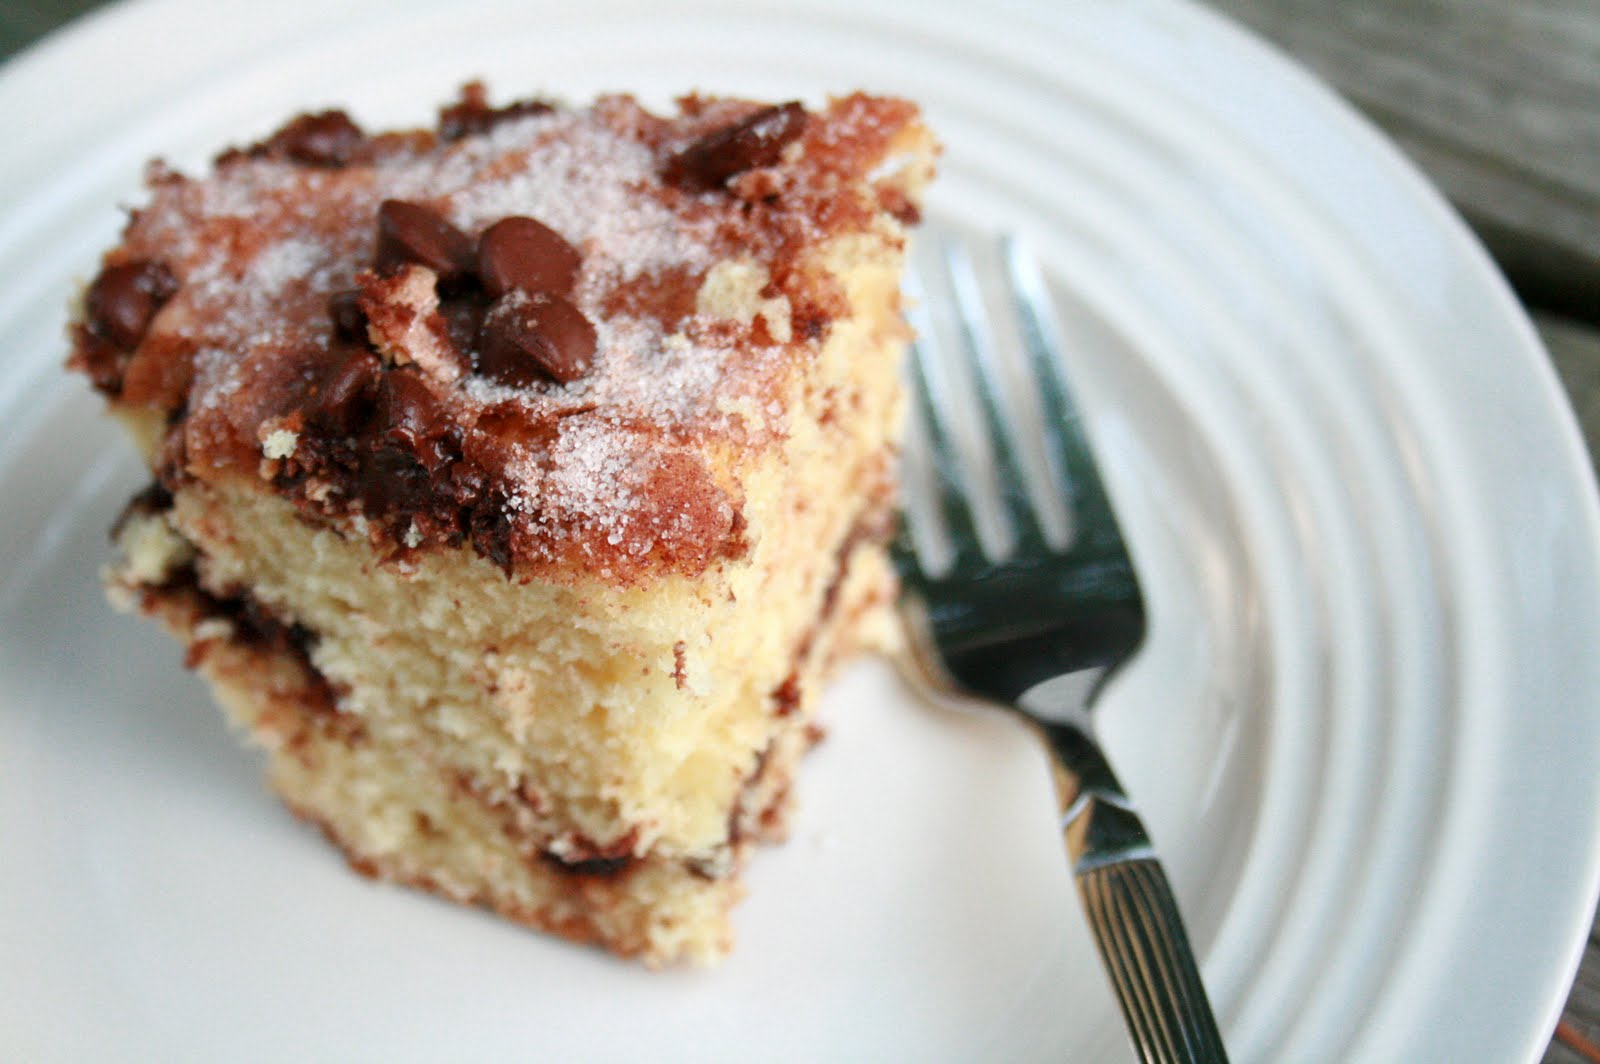 The Creative Place: Food: Chocolate Chip and Sour Cream Coffee Cake